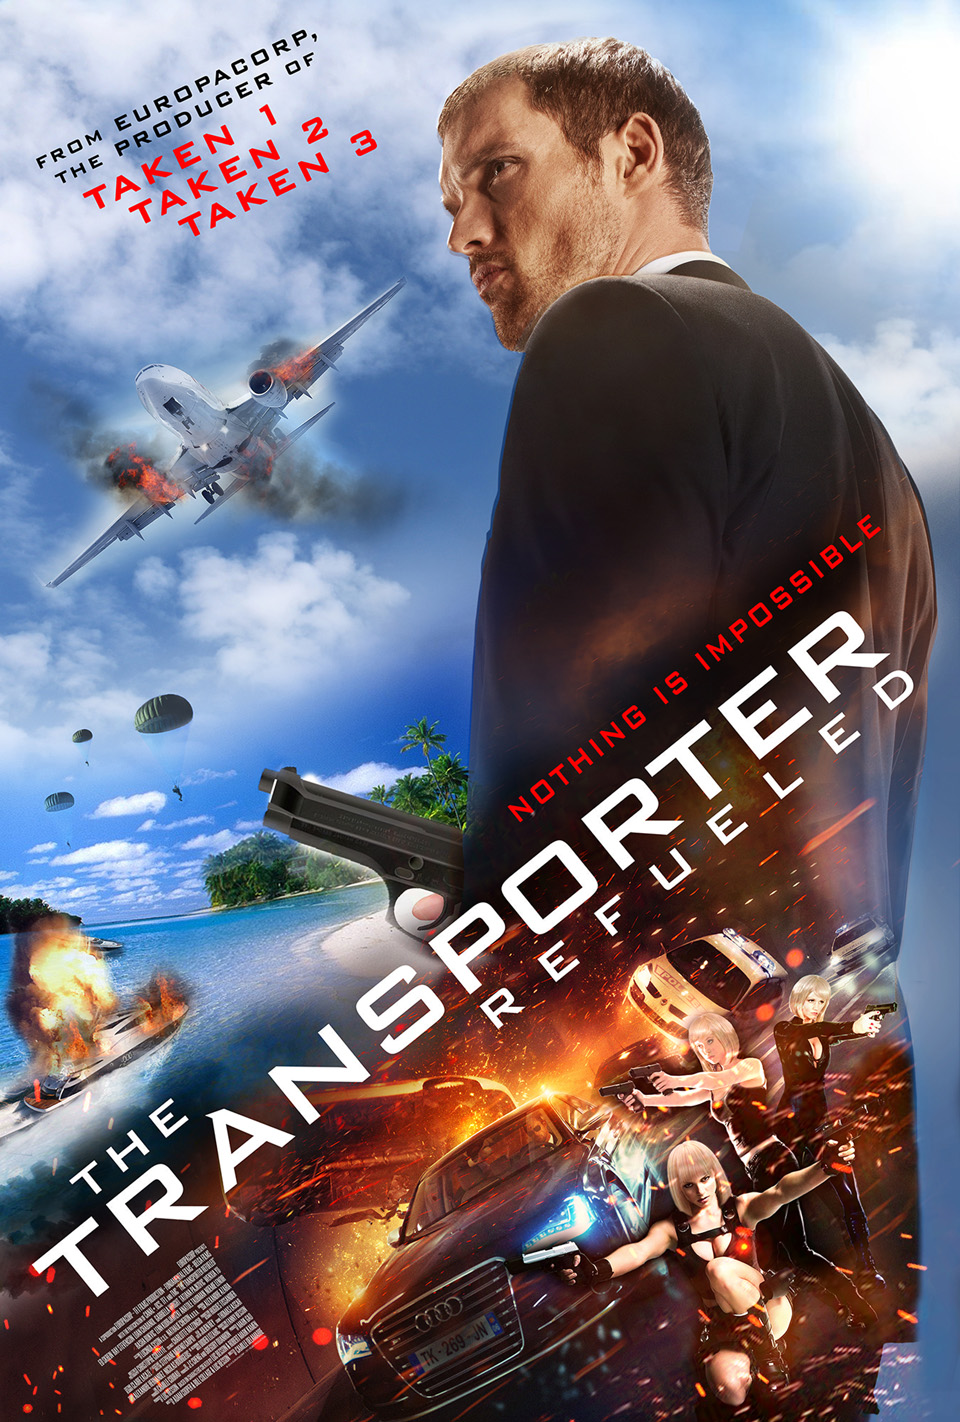 The Transporter kicks things into high gear, emphasis on